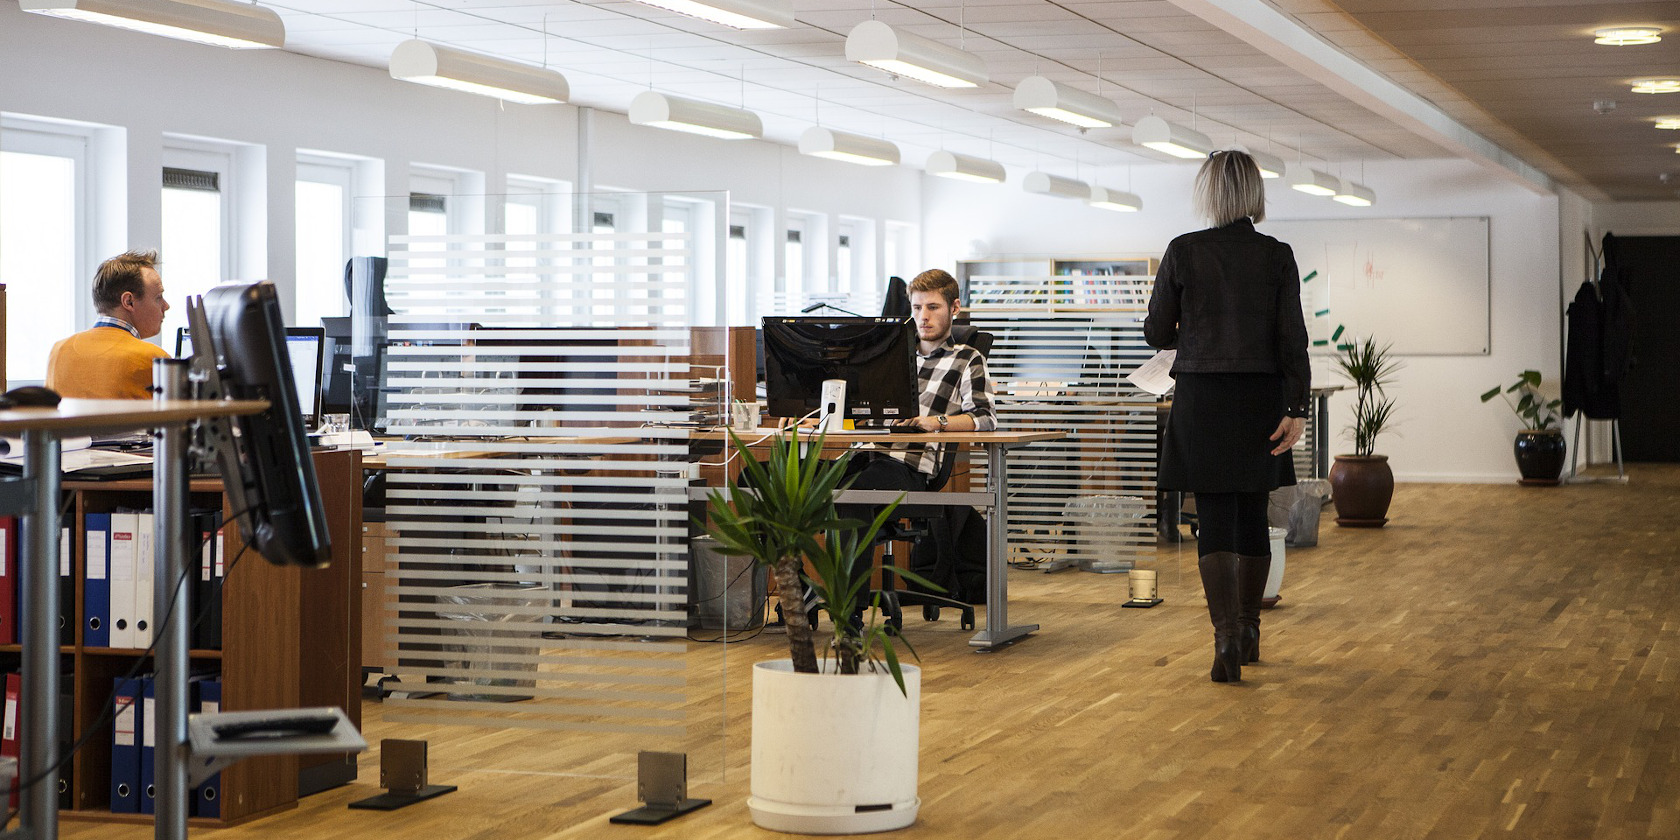 Modern office setting with staff working